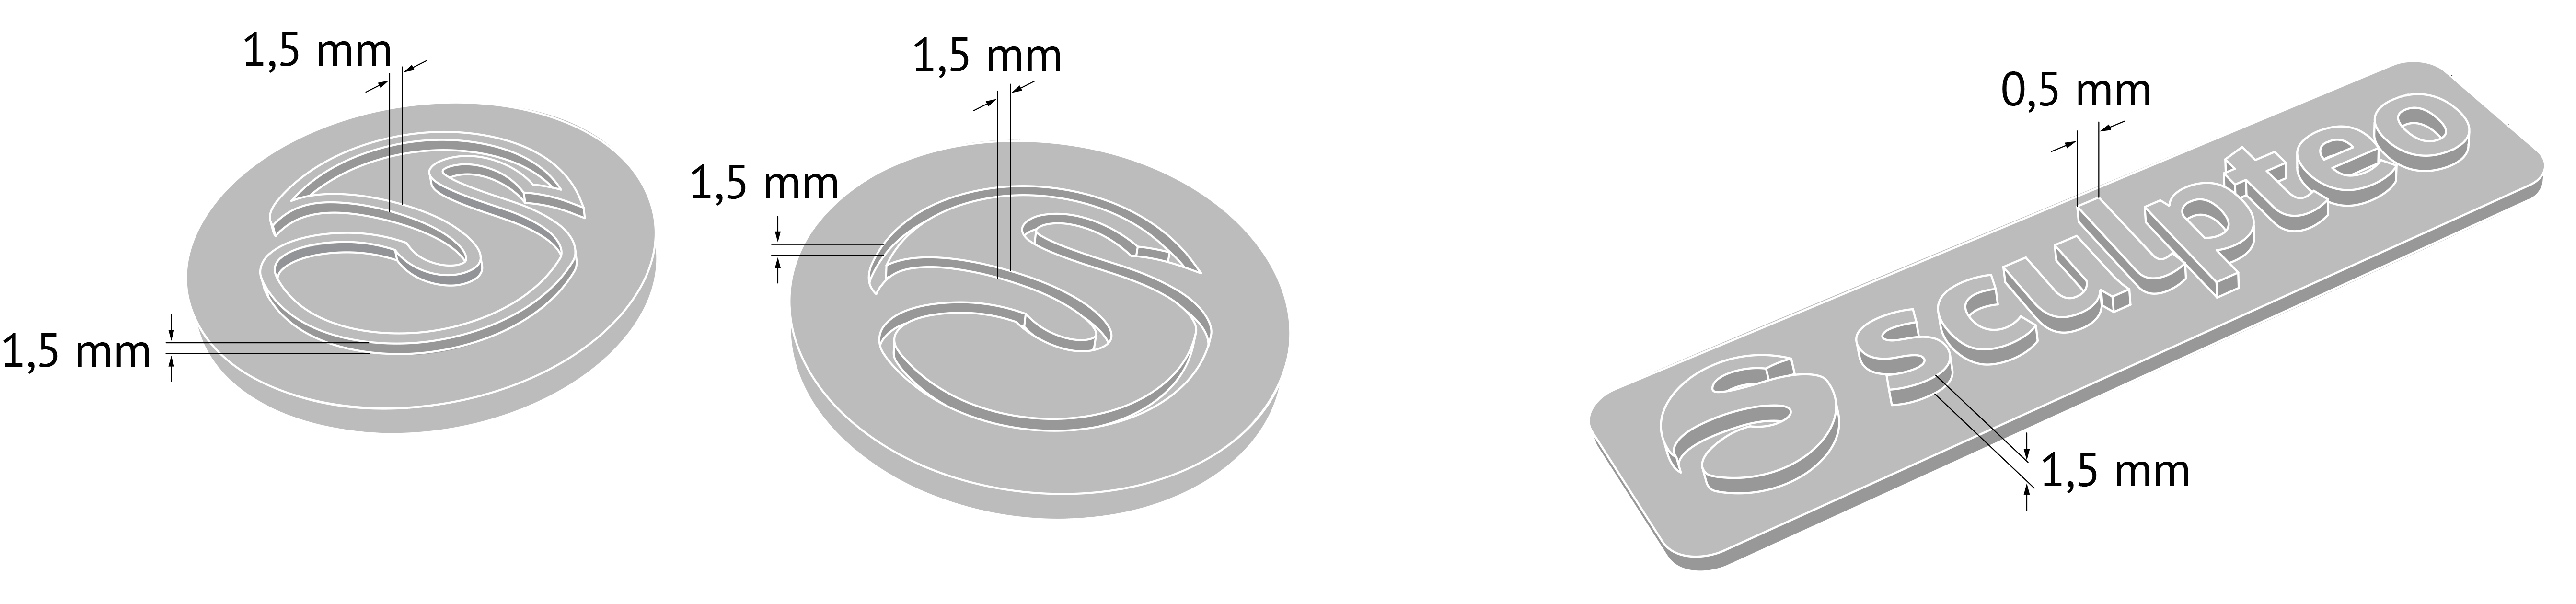 Diagram to show the etching and embossing depths for 3D printed Flexible_plastic